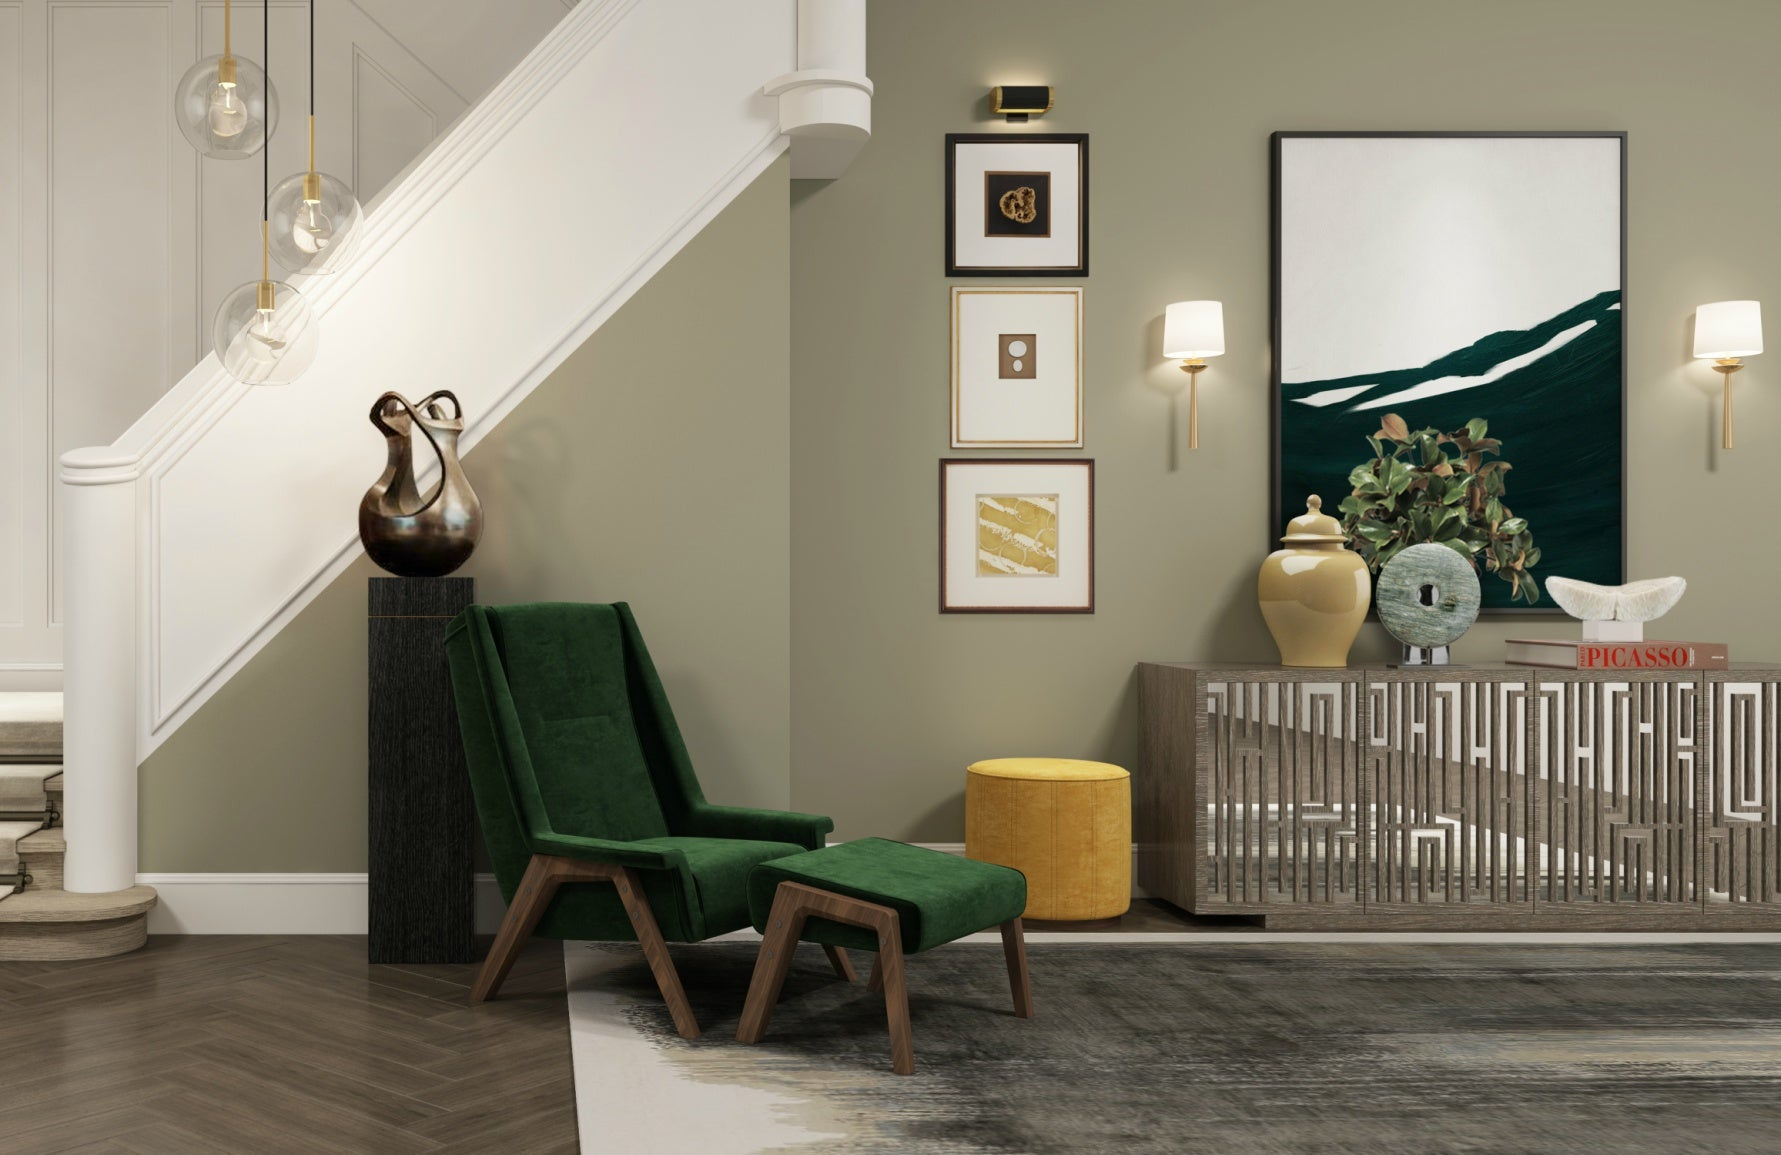 Get The Look | Wimbledon Collection | Luxury Hallway Design | Shop the look at LuxDeco.com